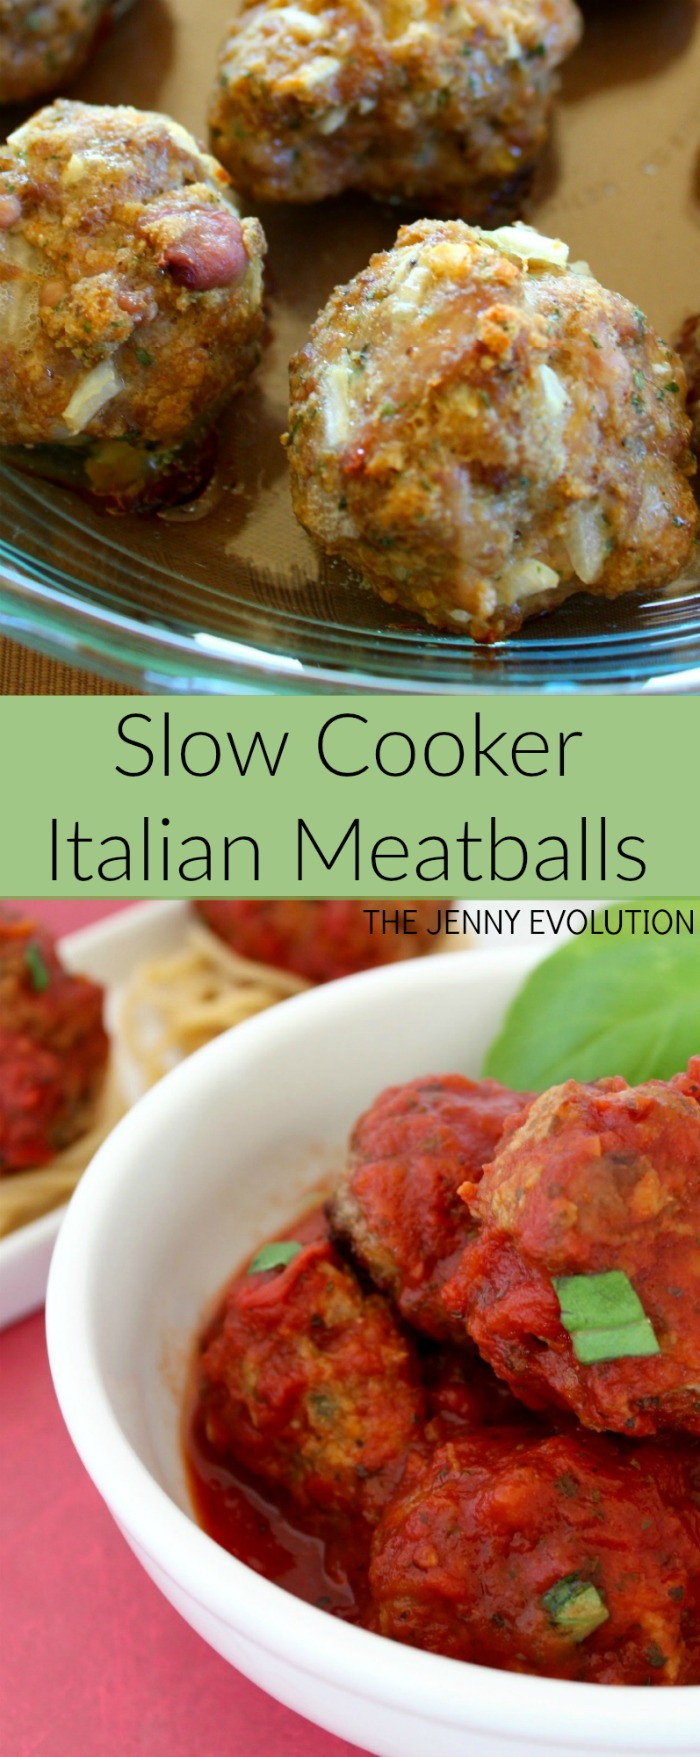 Slow Cooker Italian Meatballs Family Dinner Recipe